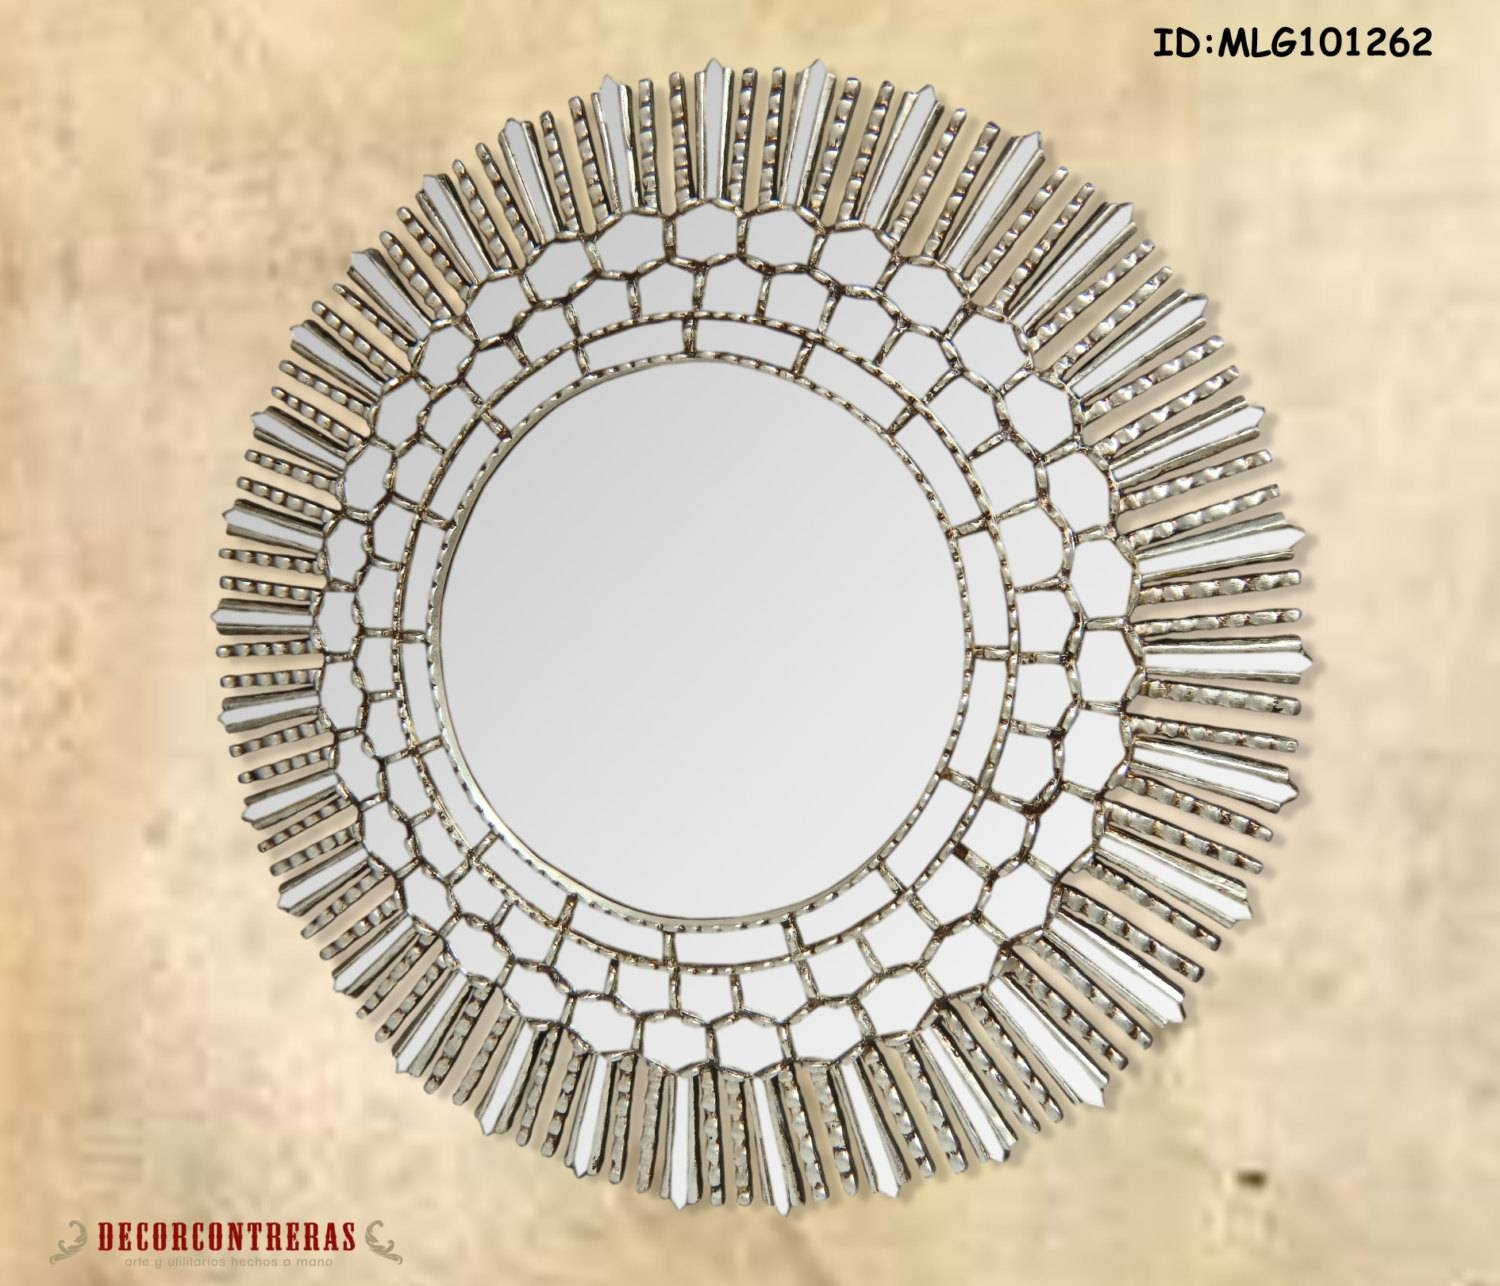 Large Round Decorative Wall Mirror Cuzco Style 31.5H with regard to Ornate Round Mirrors (Image 13 of 25)